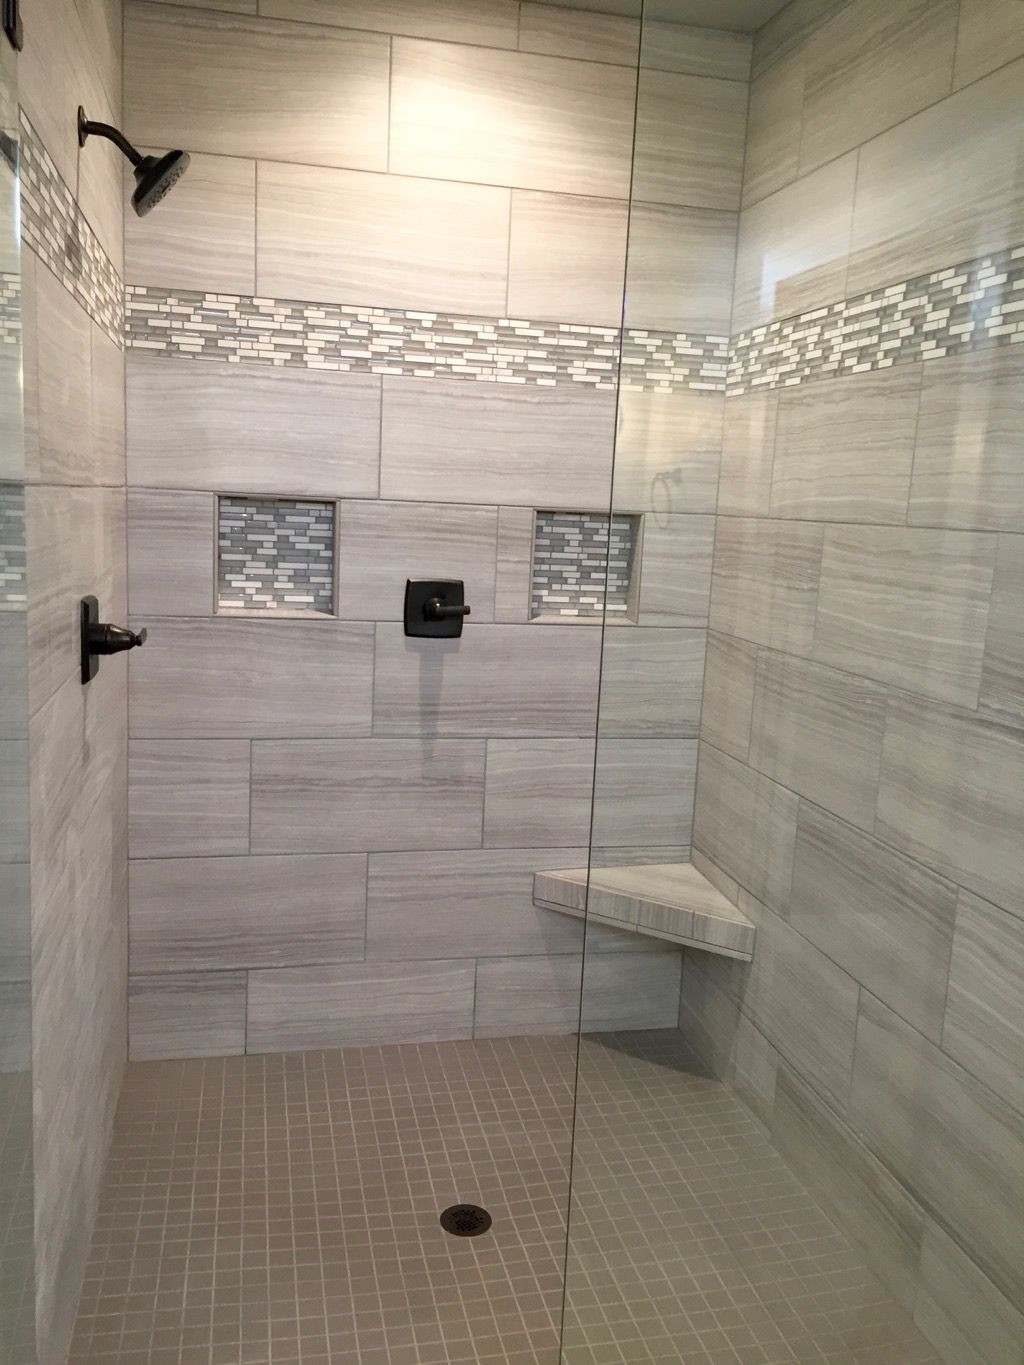 Best ideas about Bathroom Tiles Design . Save or Pin Who needs a spa day when you have a bathroom like this Now.